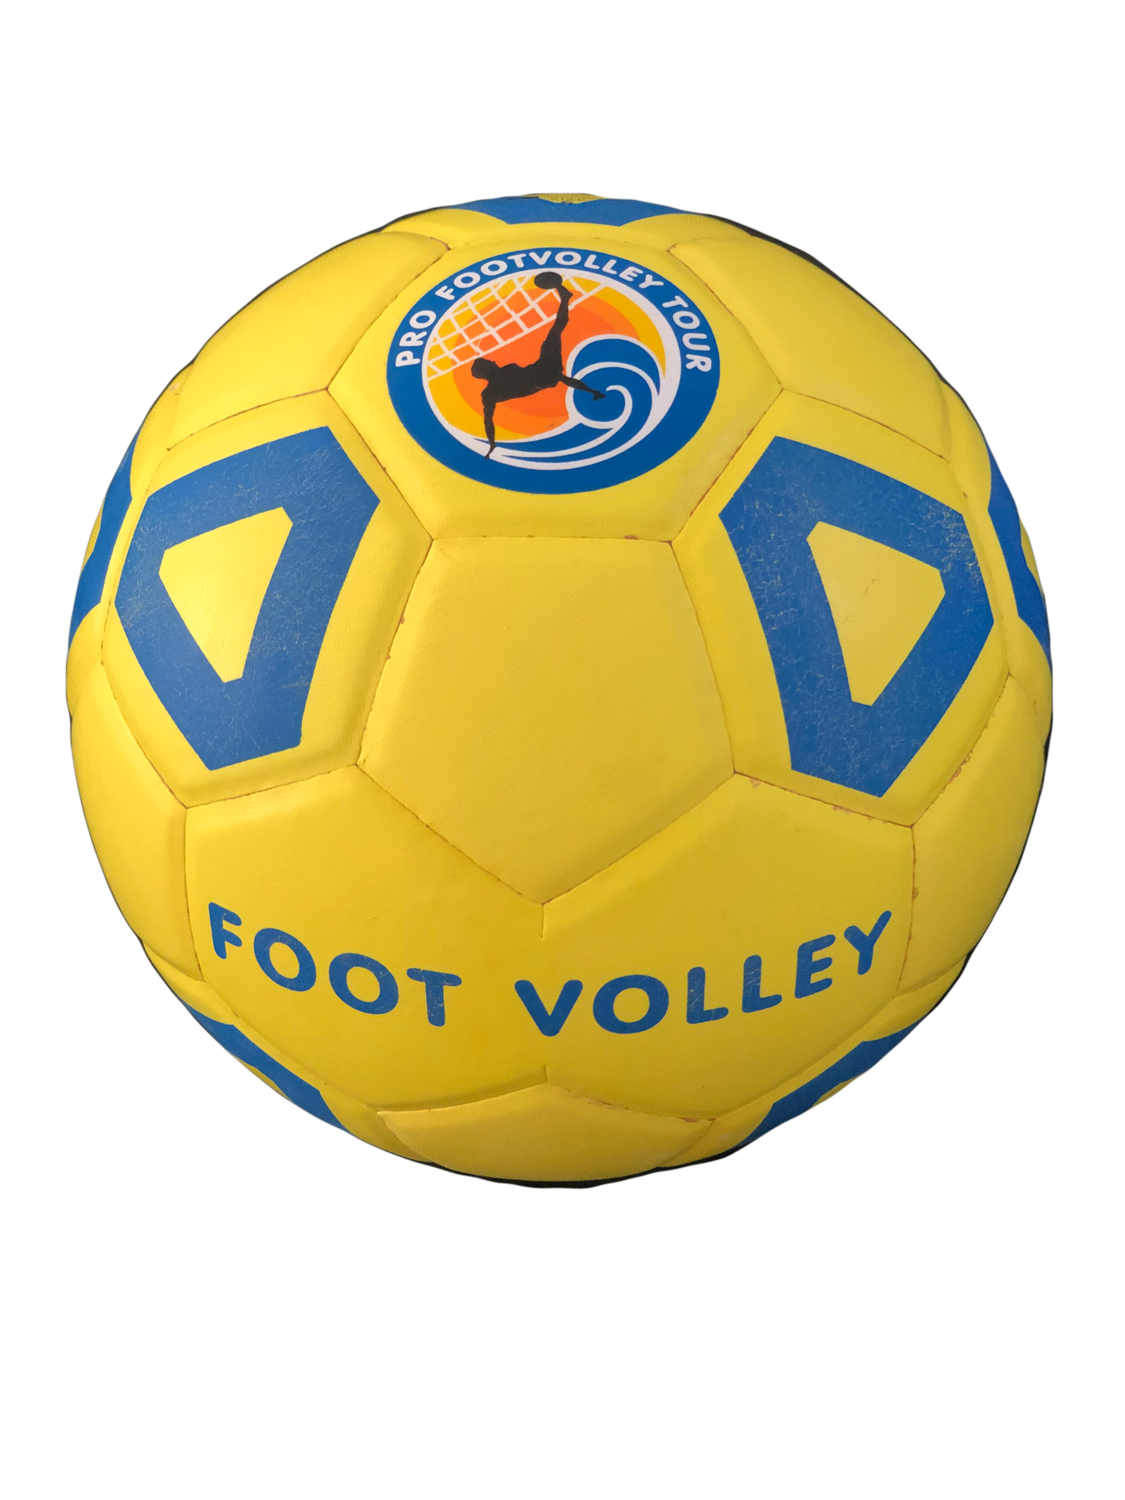 Official Footvolley Match Ball